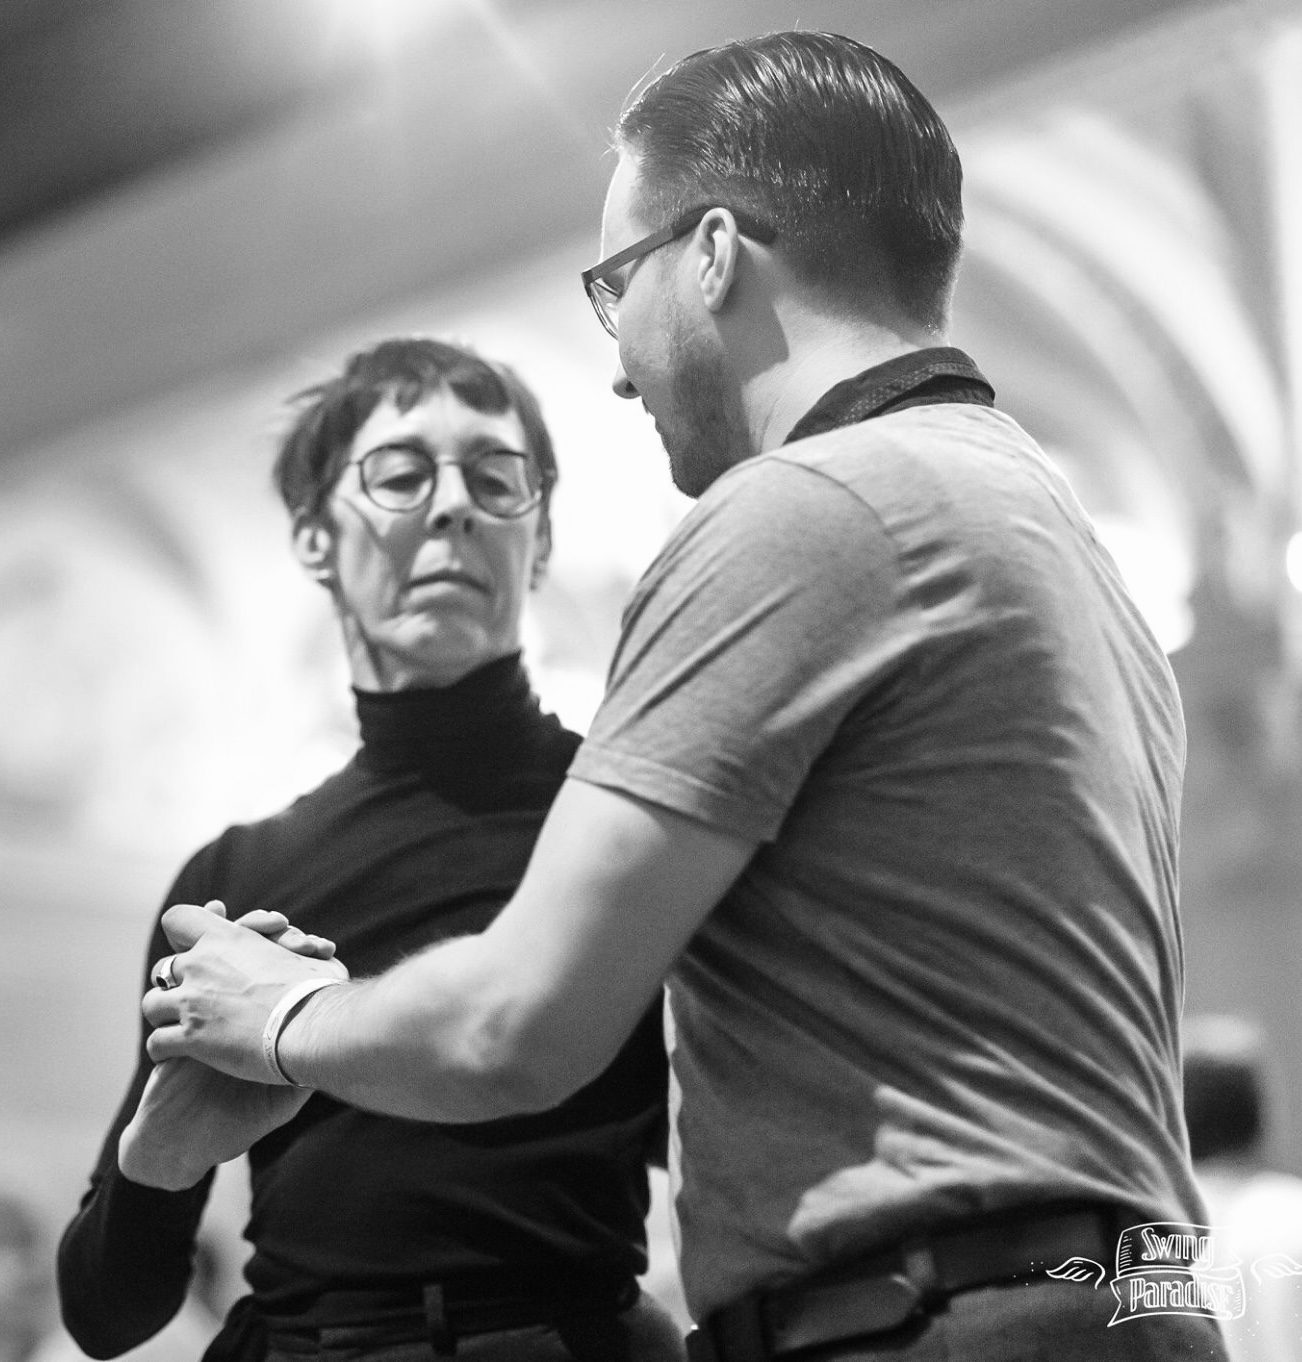 """Marijke Knockaert - In 2005 she discovered Authentic Jazz, Lindy Hop, Balboa and the whole worldwide Swing Community. She took classes & workshops all over the world. In 2009 she started teaching Lindy Hop and Authentic Jazz. She iss one of the starters of the Lindy Hop scene in Ghent: """"Gentse Hoppers"""", founder and teacher of the Balboa community in Ghent.She is a well known international Dj of Swing music.Last year she started to teach Balboa in BSDC, and this year she introduce the whole Team Balboa."""